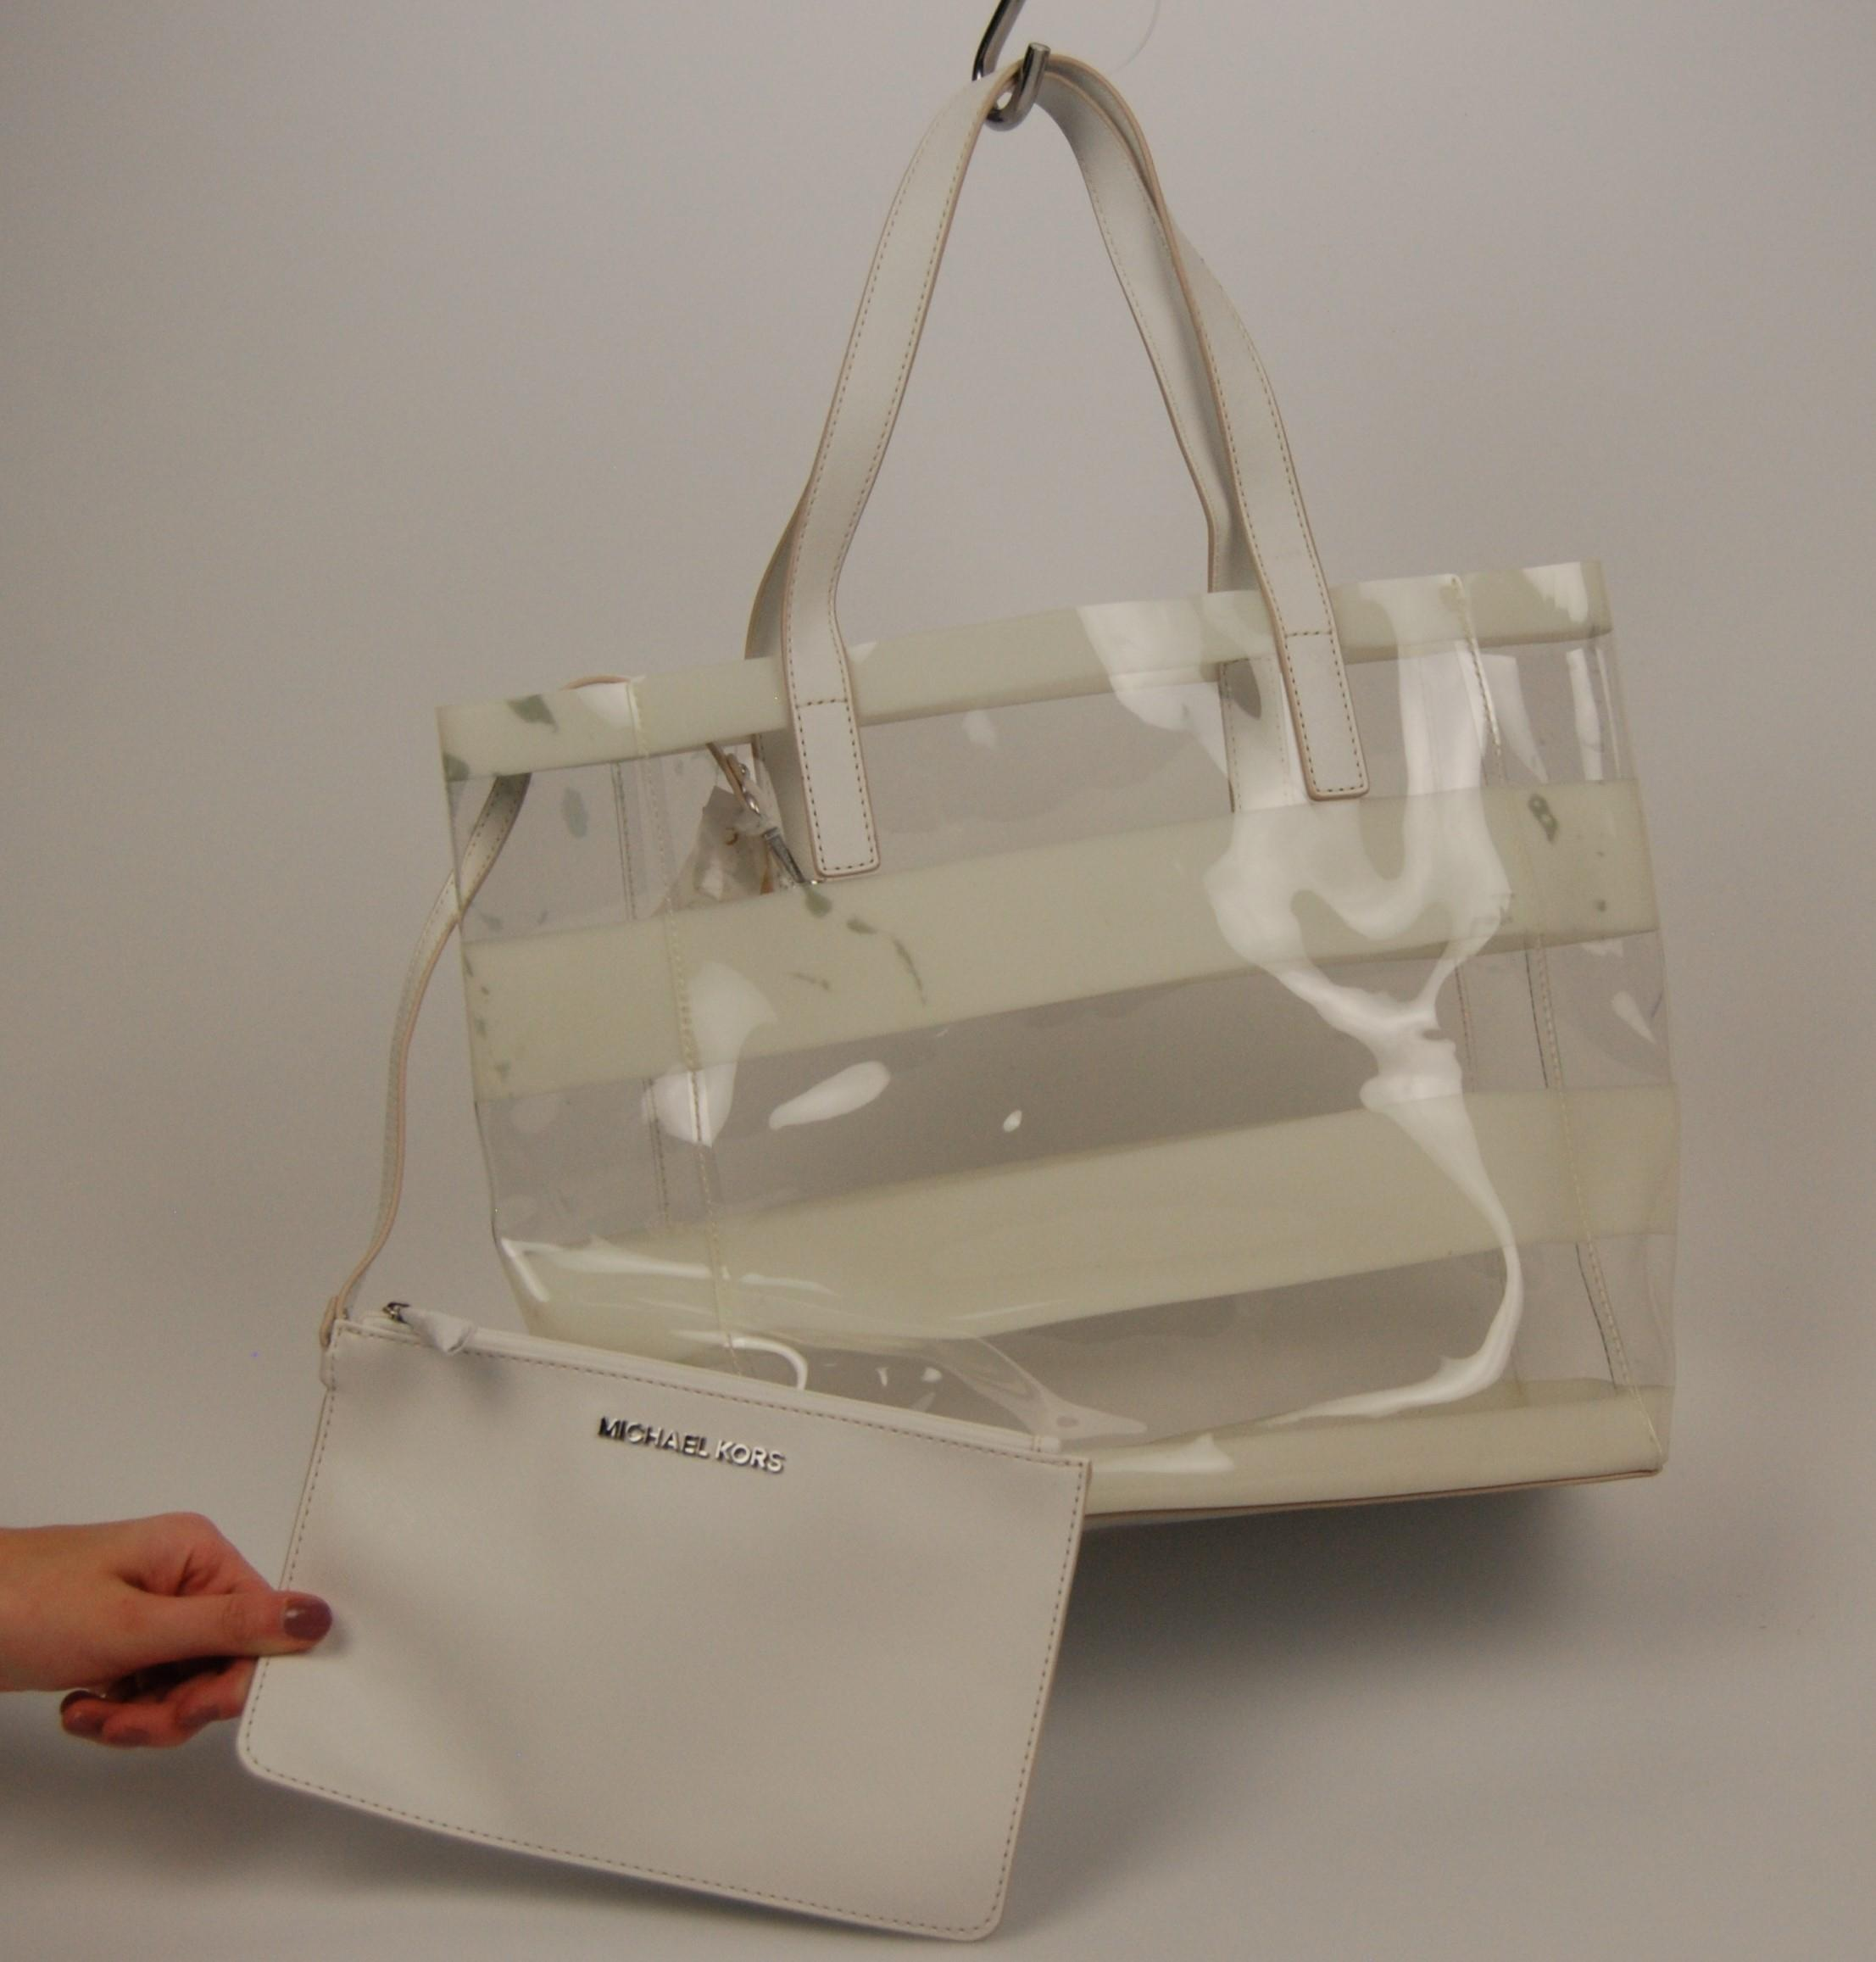 ad7621e5b3d6df ... top quality promo code for michael kors eliza tote in clear white.  a266b 73aff